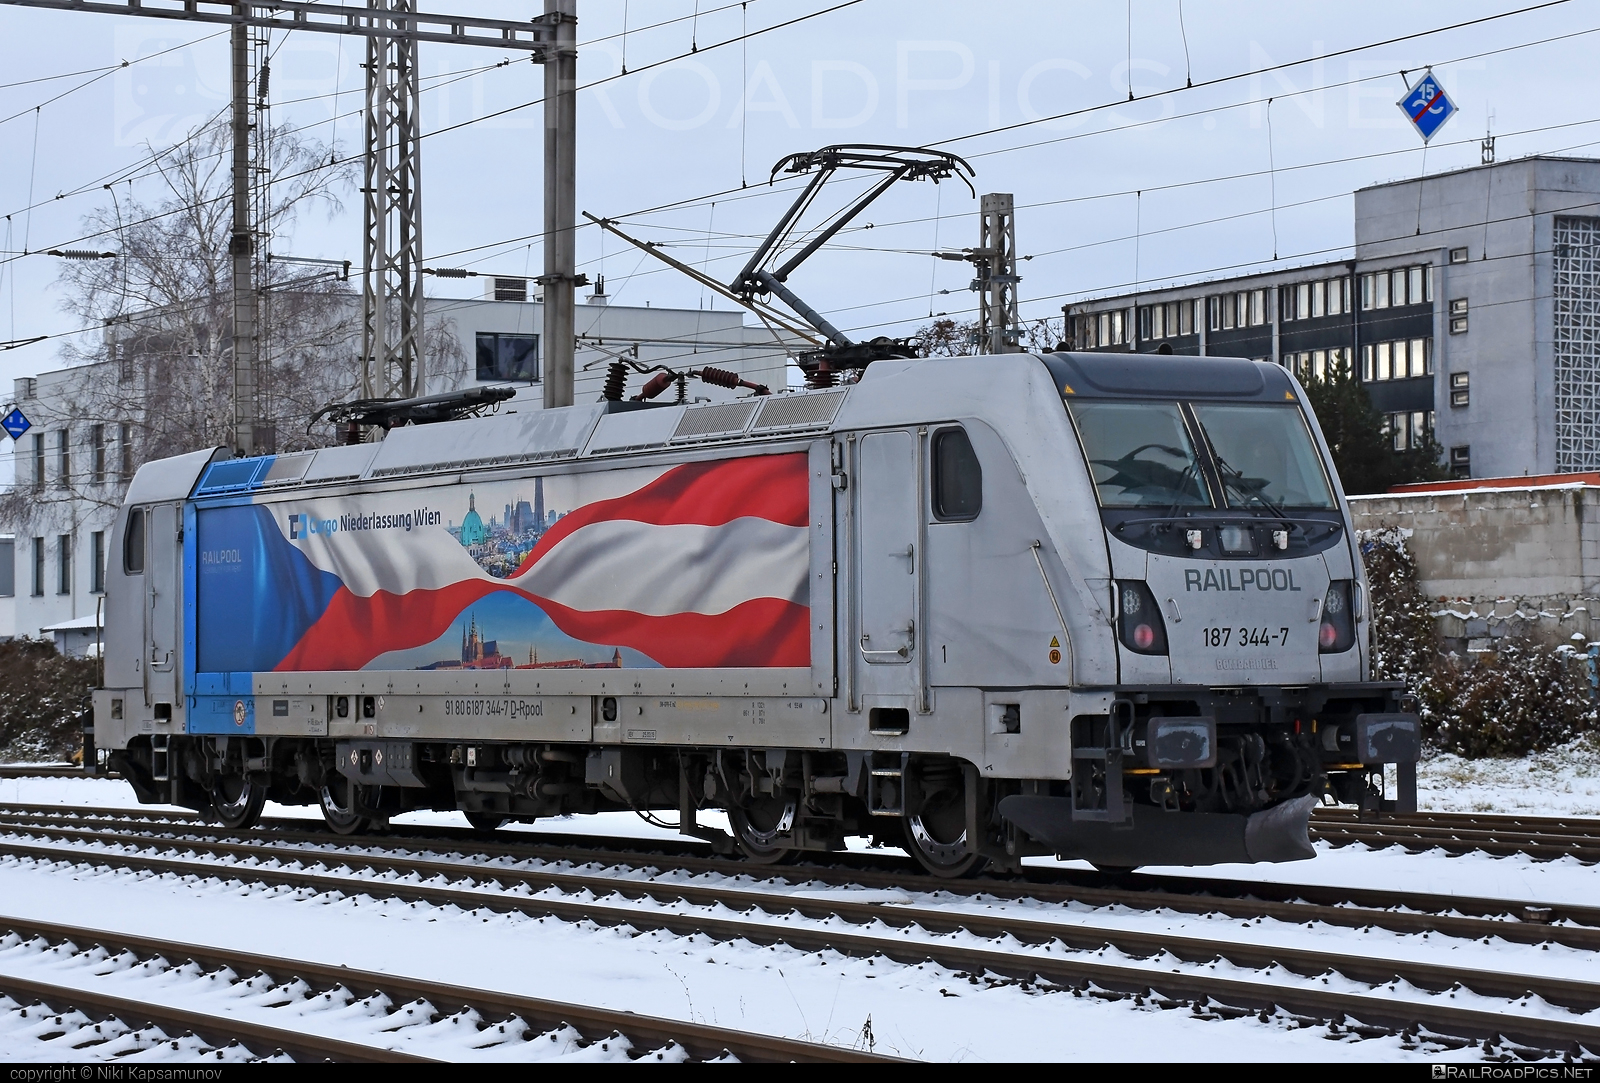 Bombardier TRAXX F160 AC3 - 187 344-7 operated by ČD Cargo, a.s. #bombardier #bombardiertraxx #cdcargo #railpool #railpoolgmbh #traxx #traxxf160 #traxxf160ac #traxxf160ac3